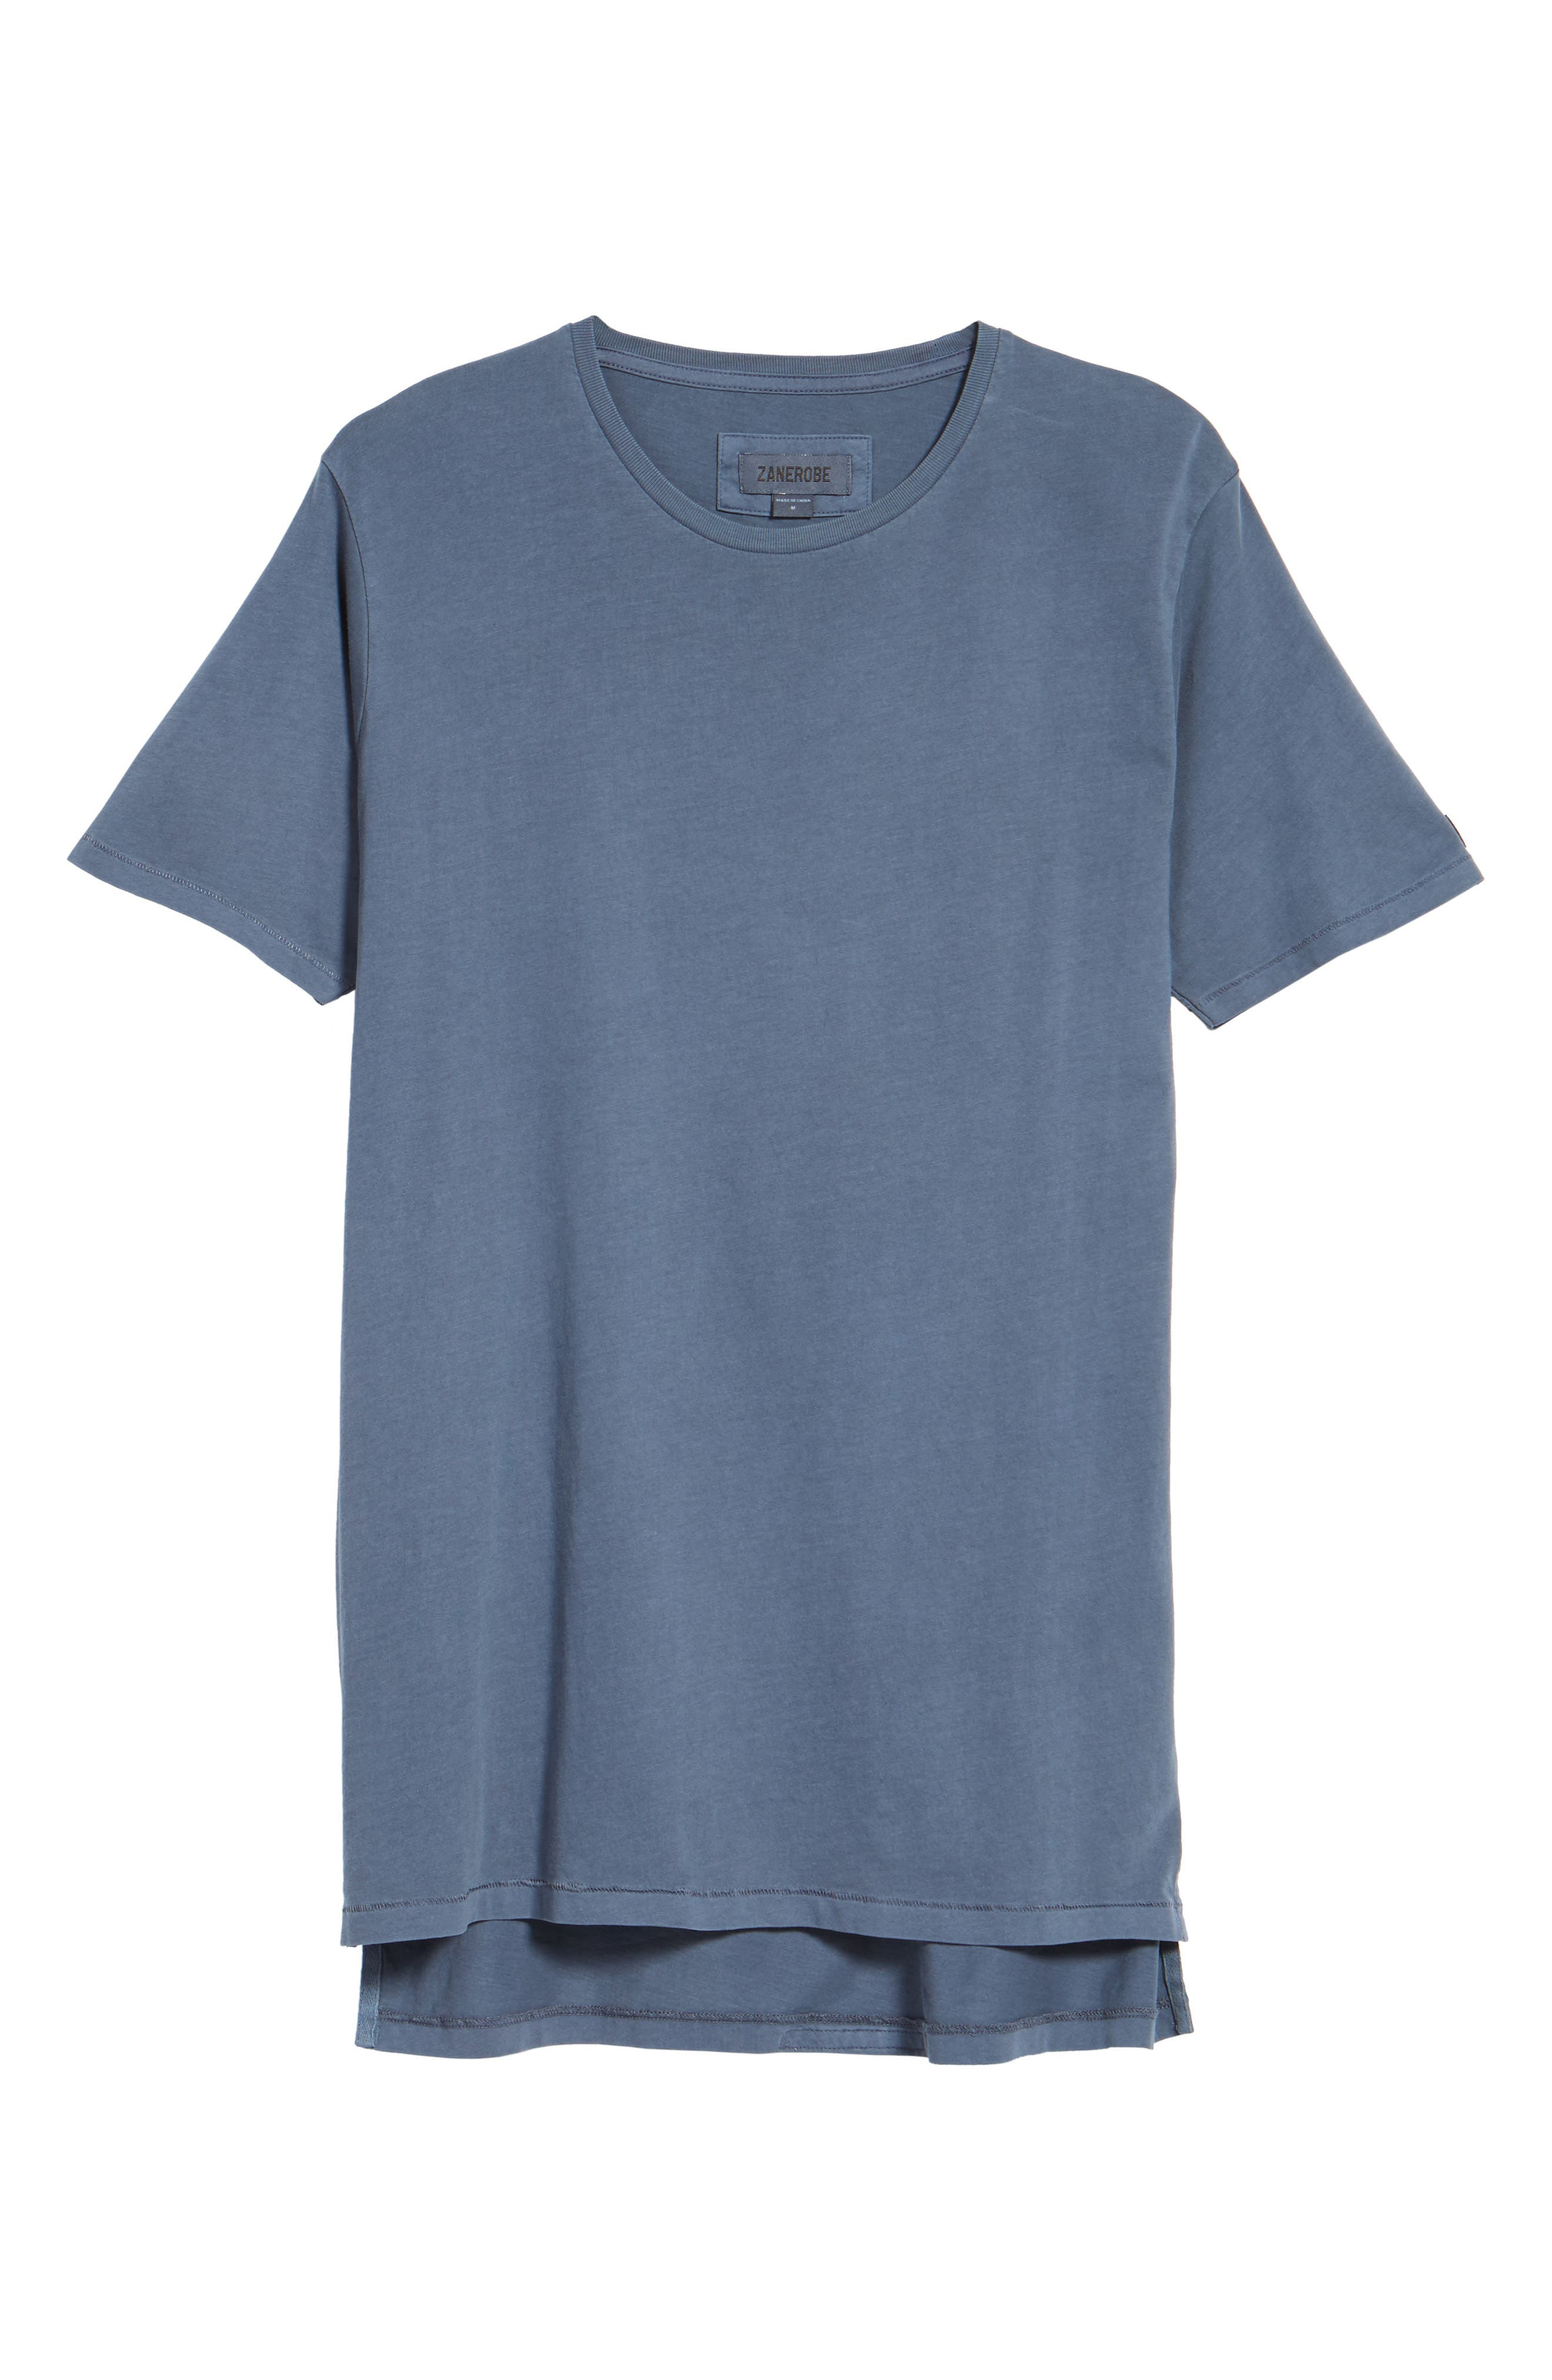 Flintlock Stripe T-Shirt,                             Alternate thumbnail 6, color,                             PIGMENT BLUE GREY